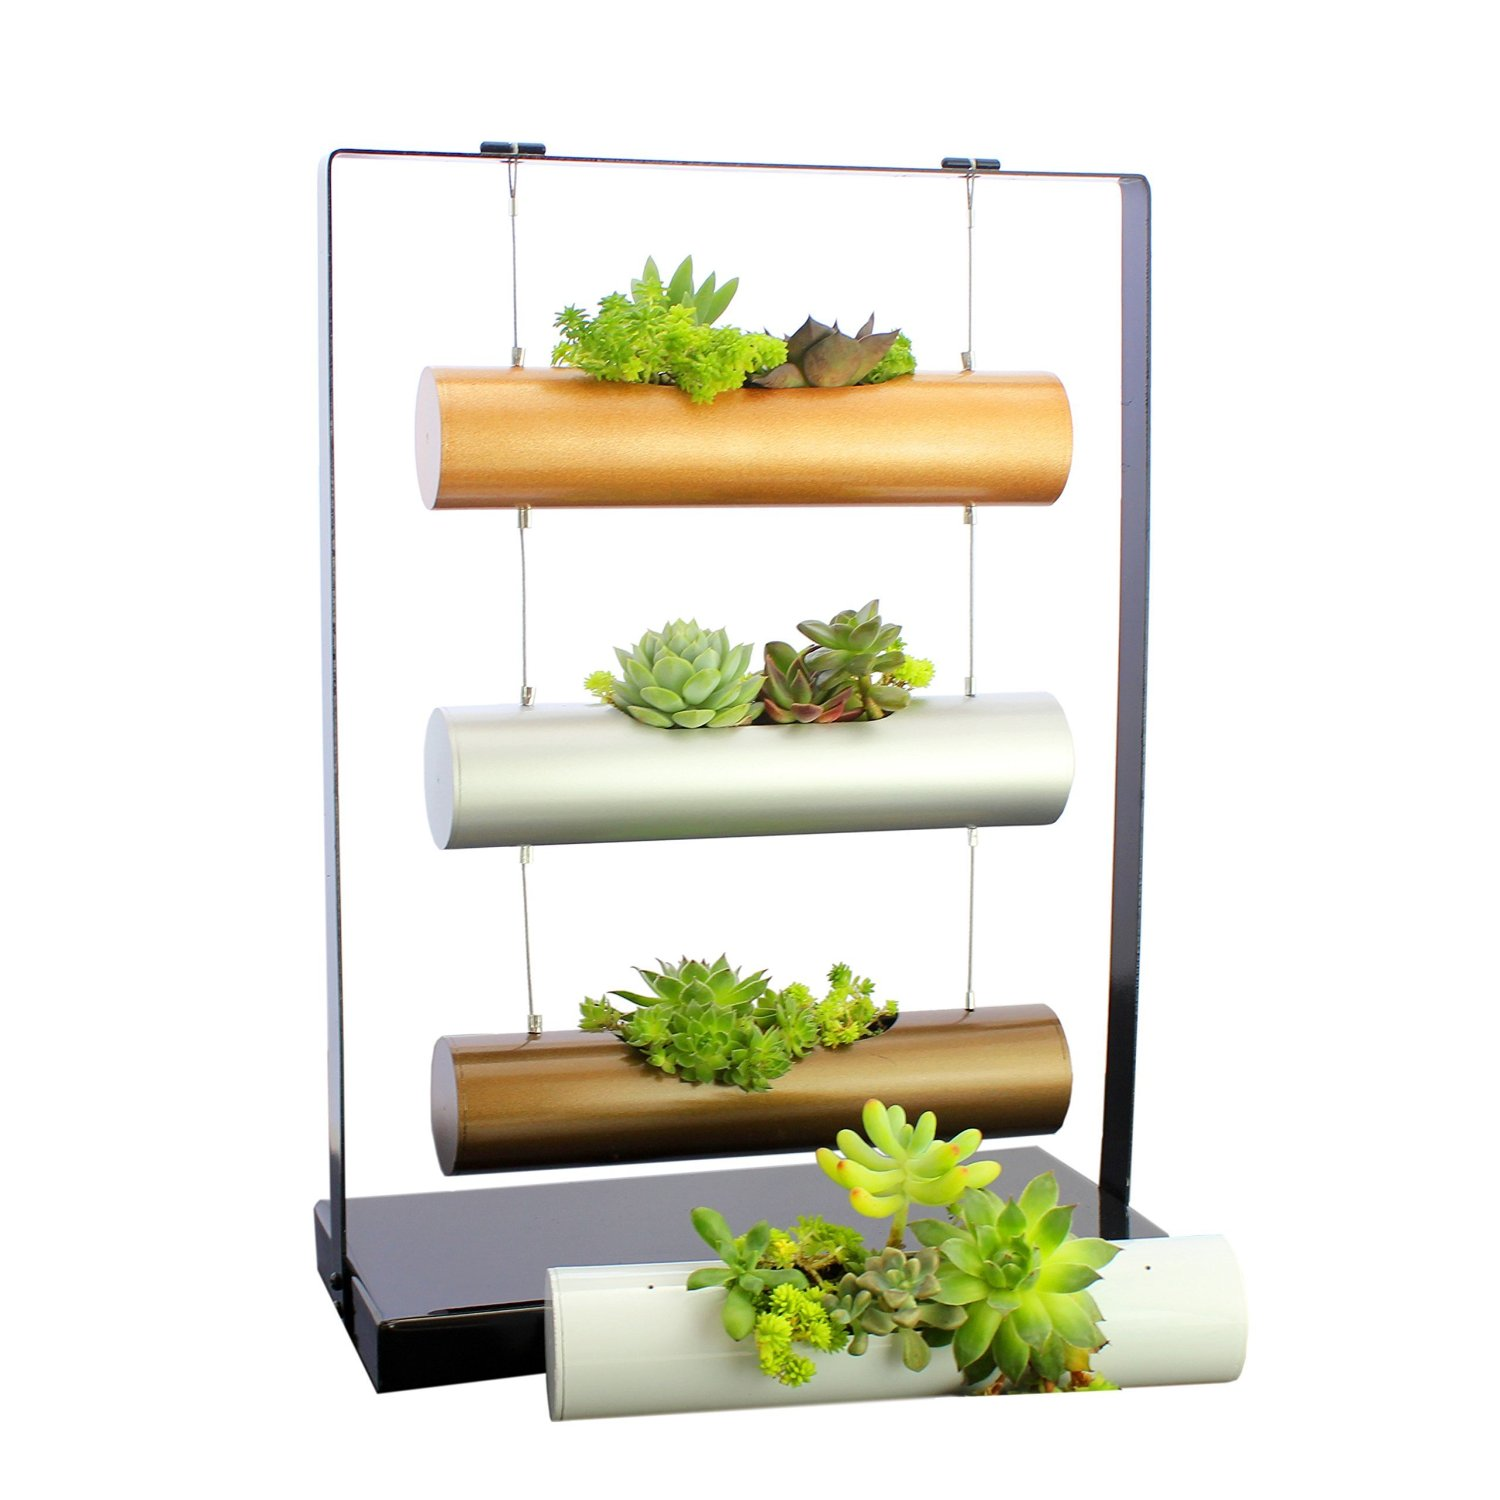 14 Ways to Display Succulents - Tiered Hanging Planter